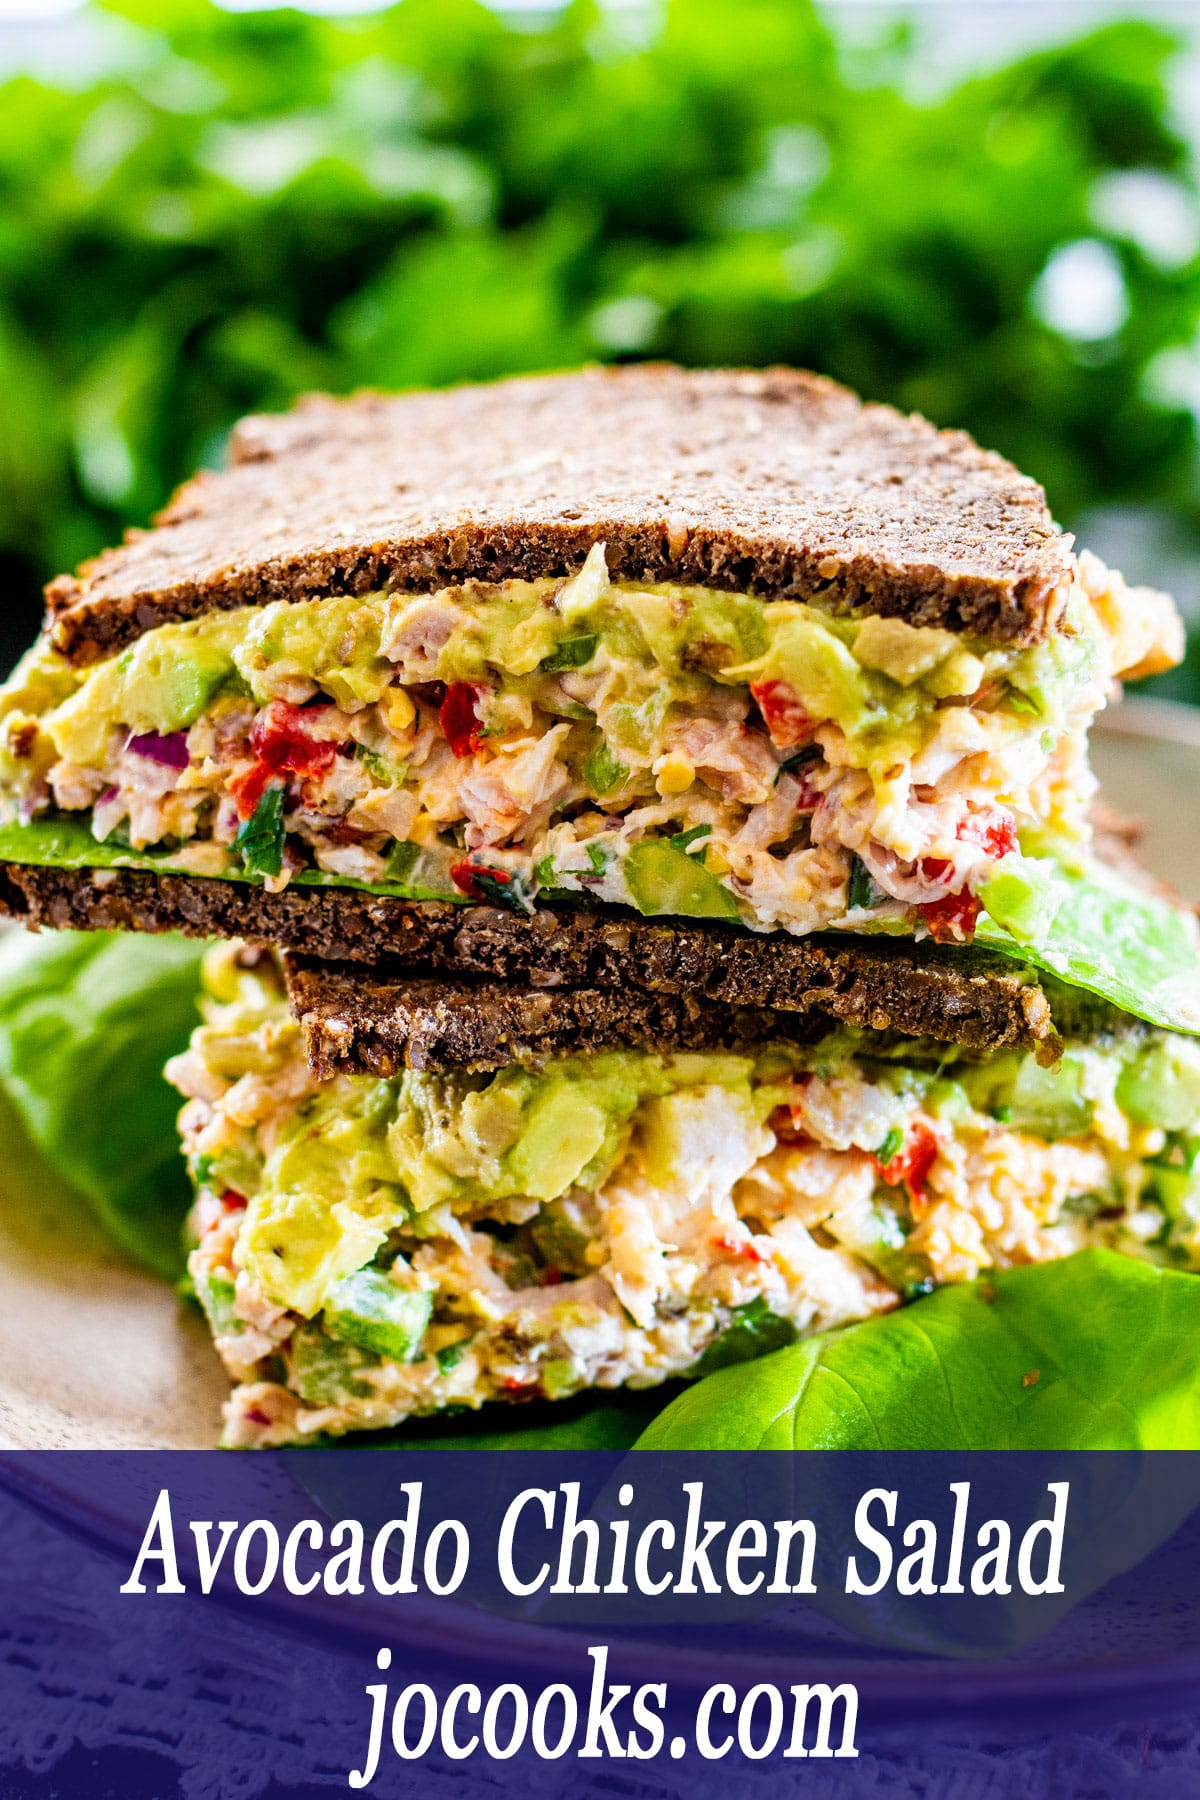 Avocado Chicken Salad sandwiches with dark bread